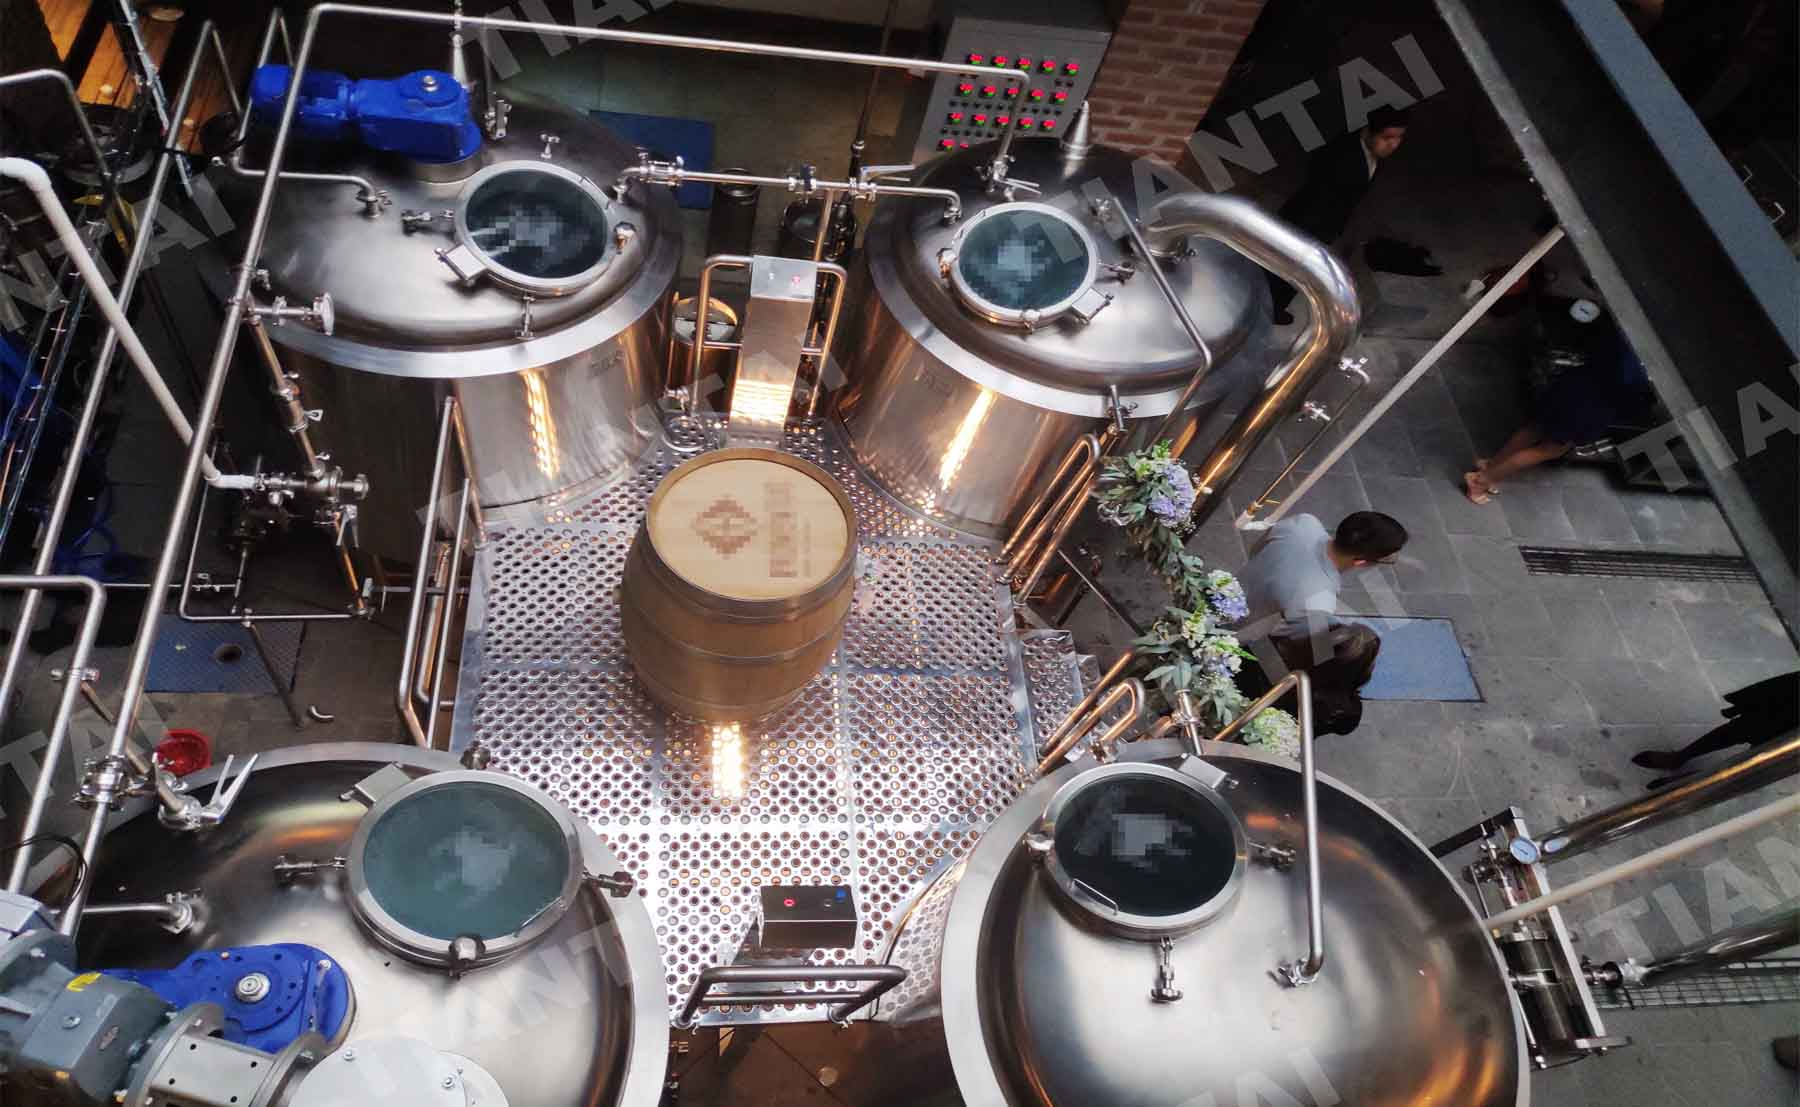 1200L/10BBL Beer Brewery Equipment in Mexico